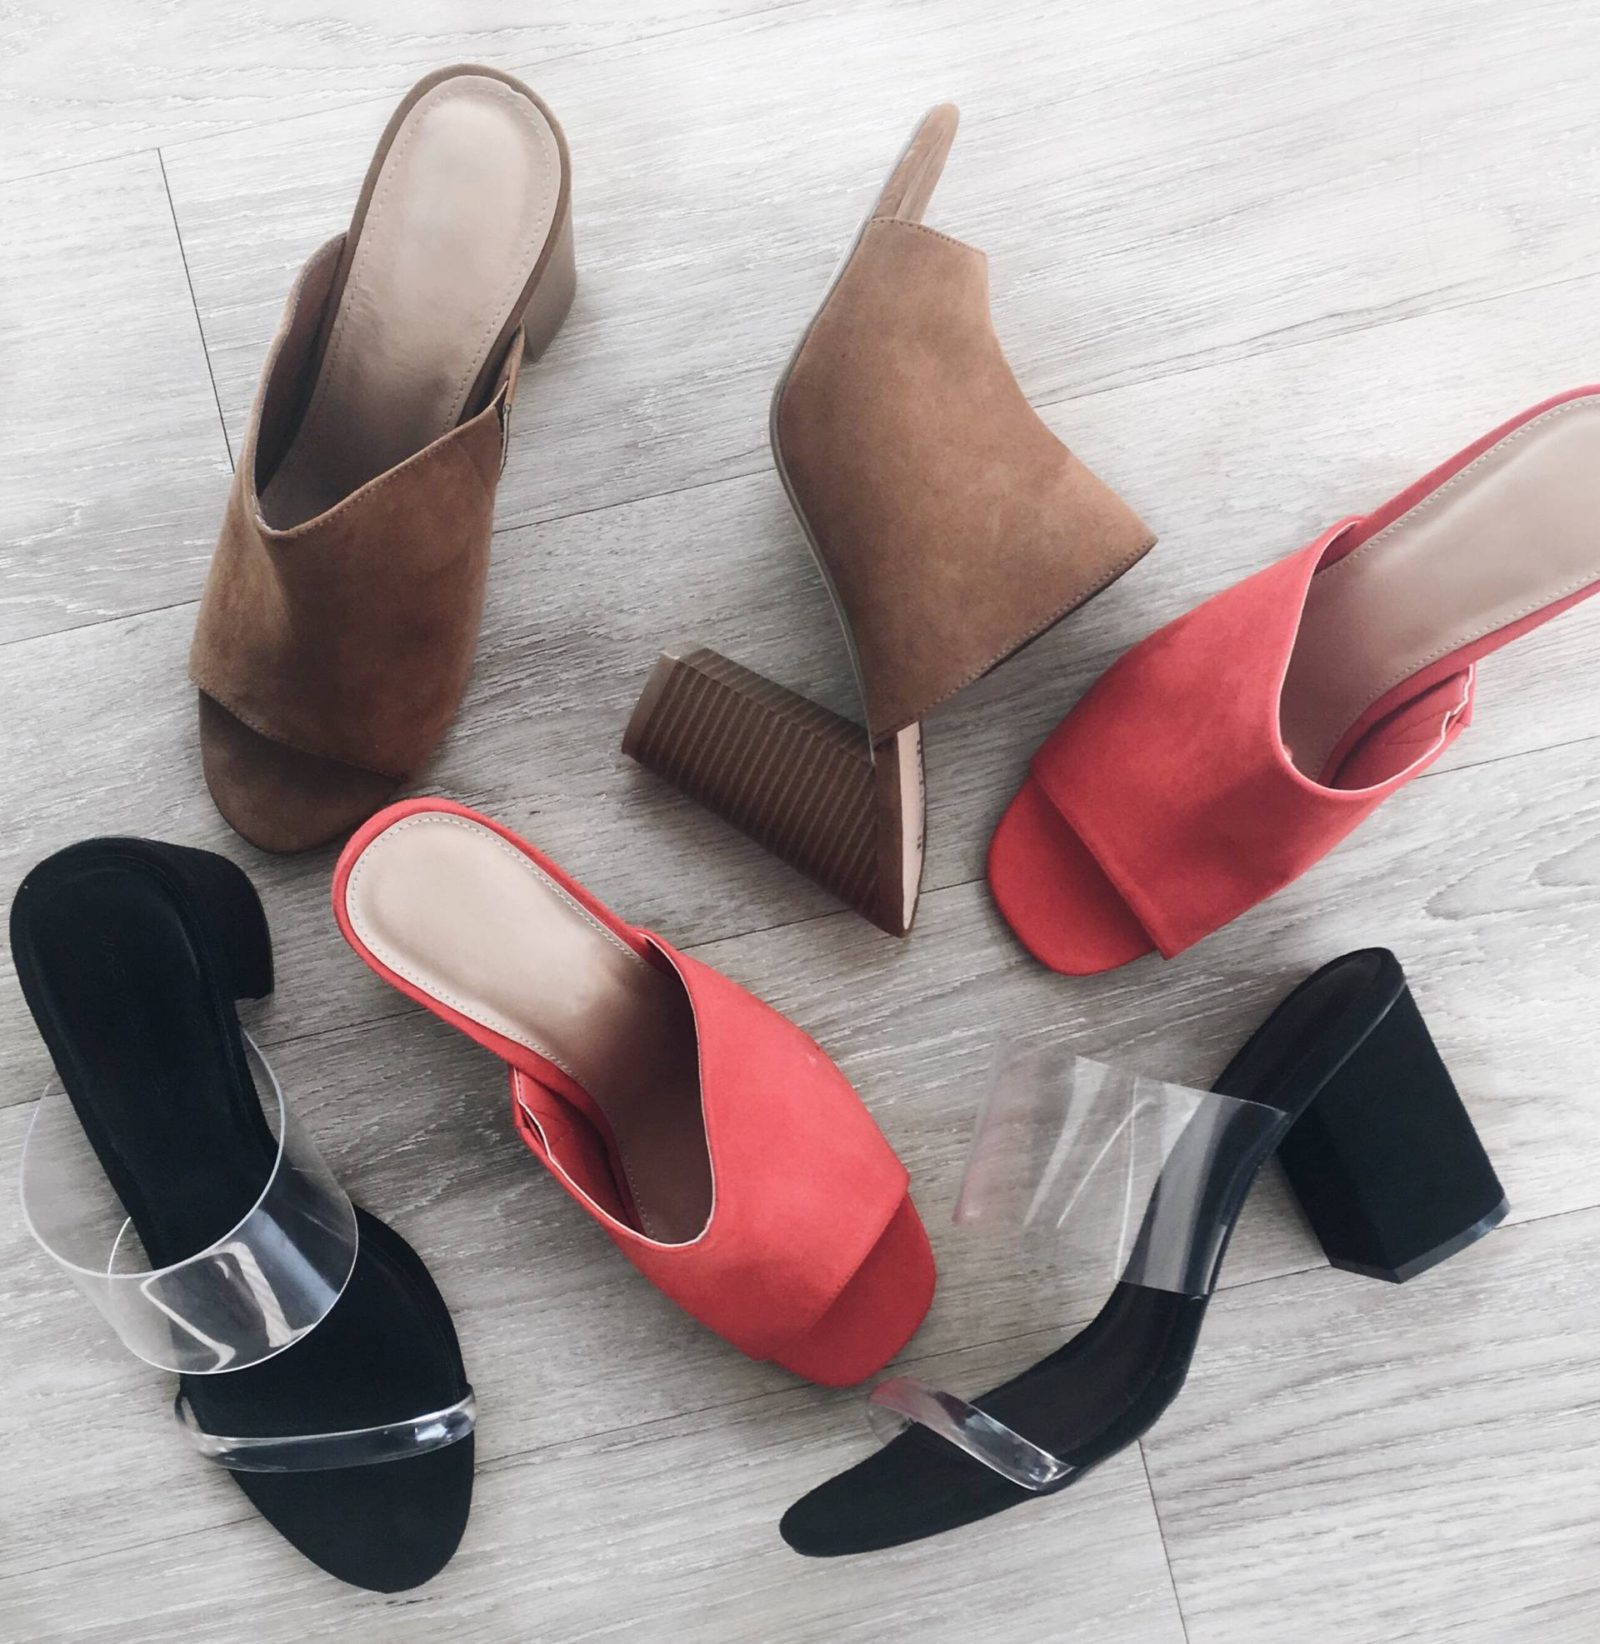 Mules For Spring-Le Fab Chic